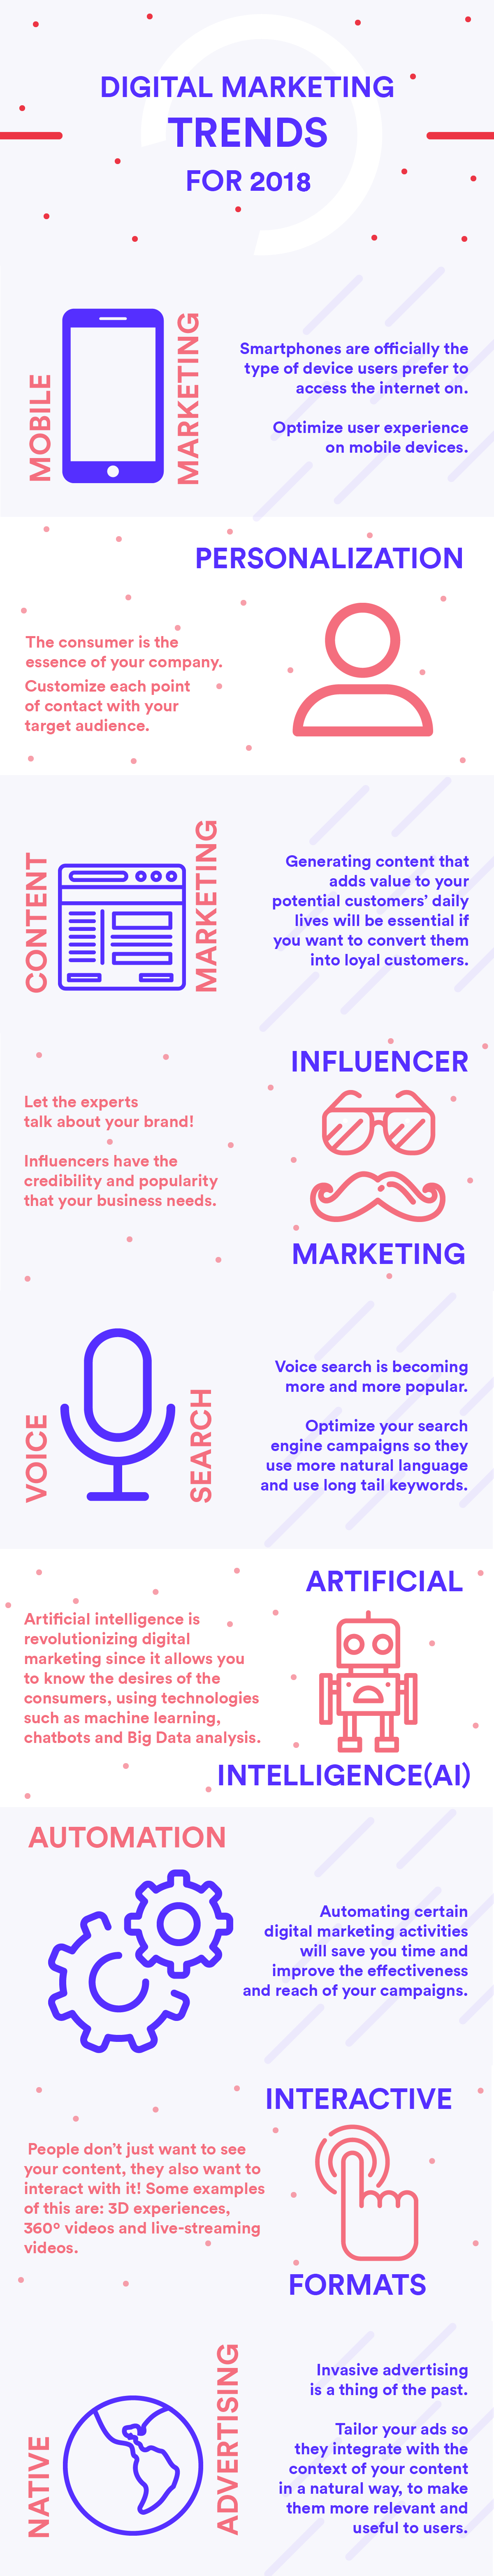 Digital Marketing Trends 2018 Infographic